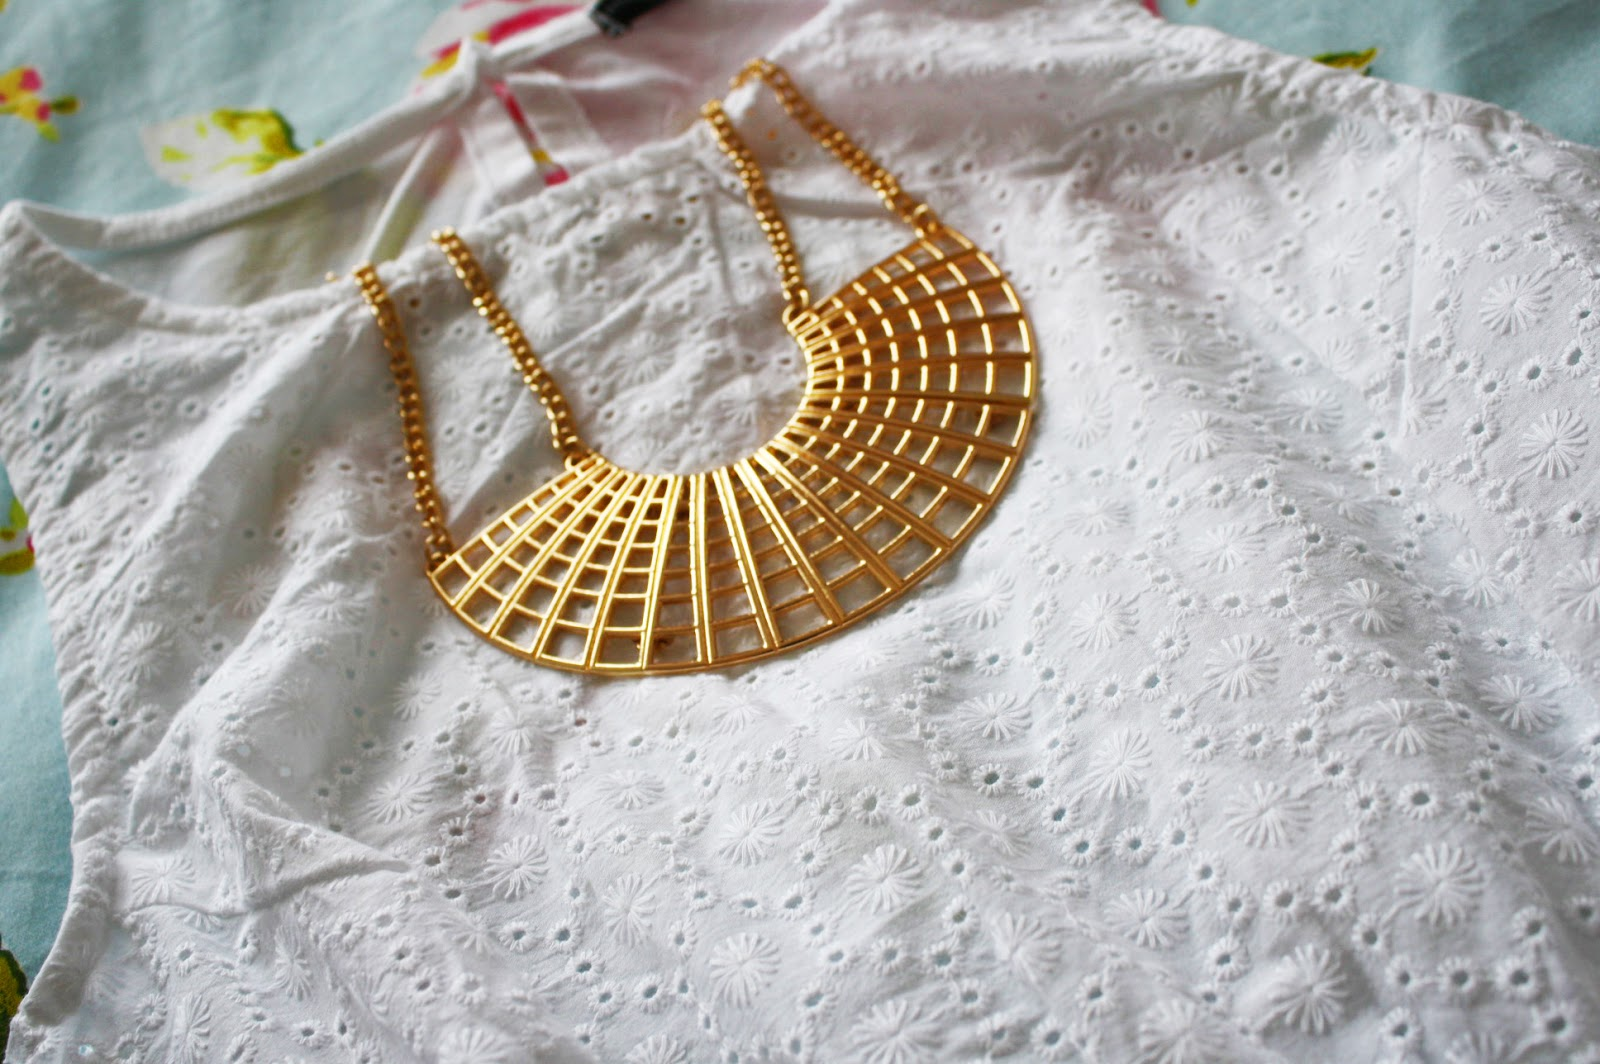 A floaty White Primark dress with Gold Primark accessories